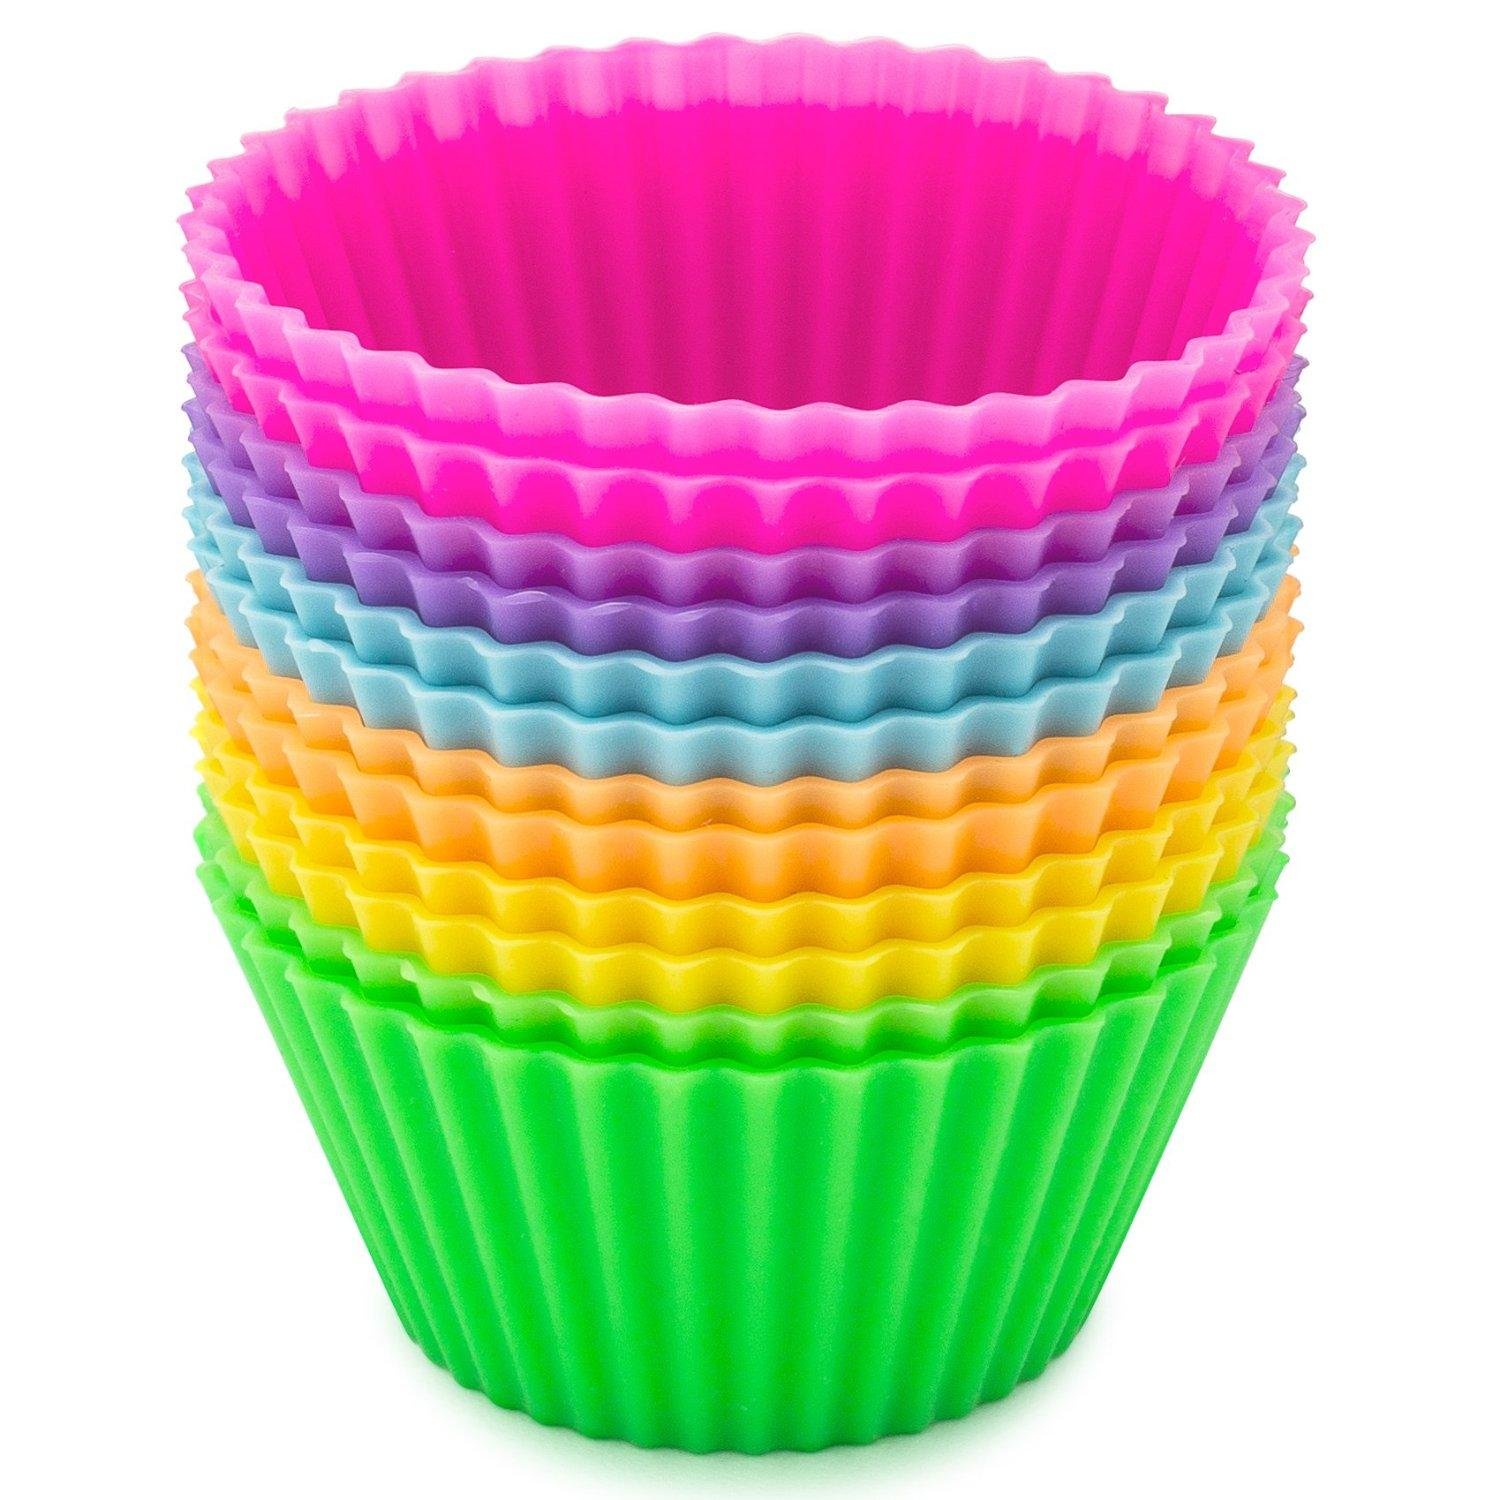 Sunsella Little Gems - Silicone Baking Cups - 12 Pack